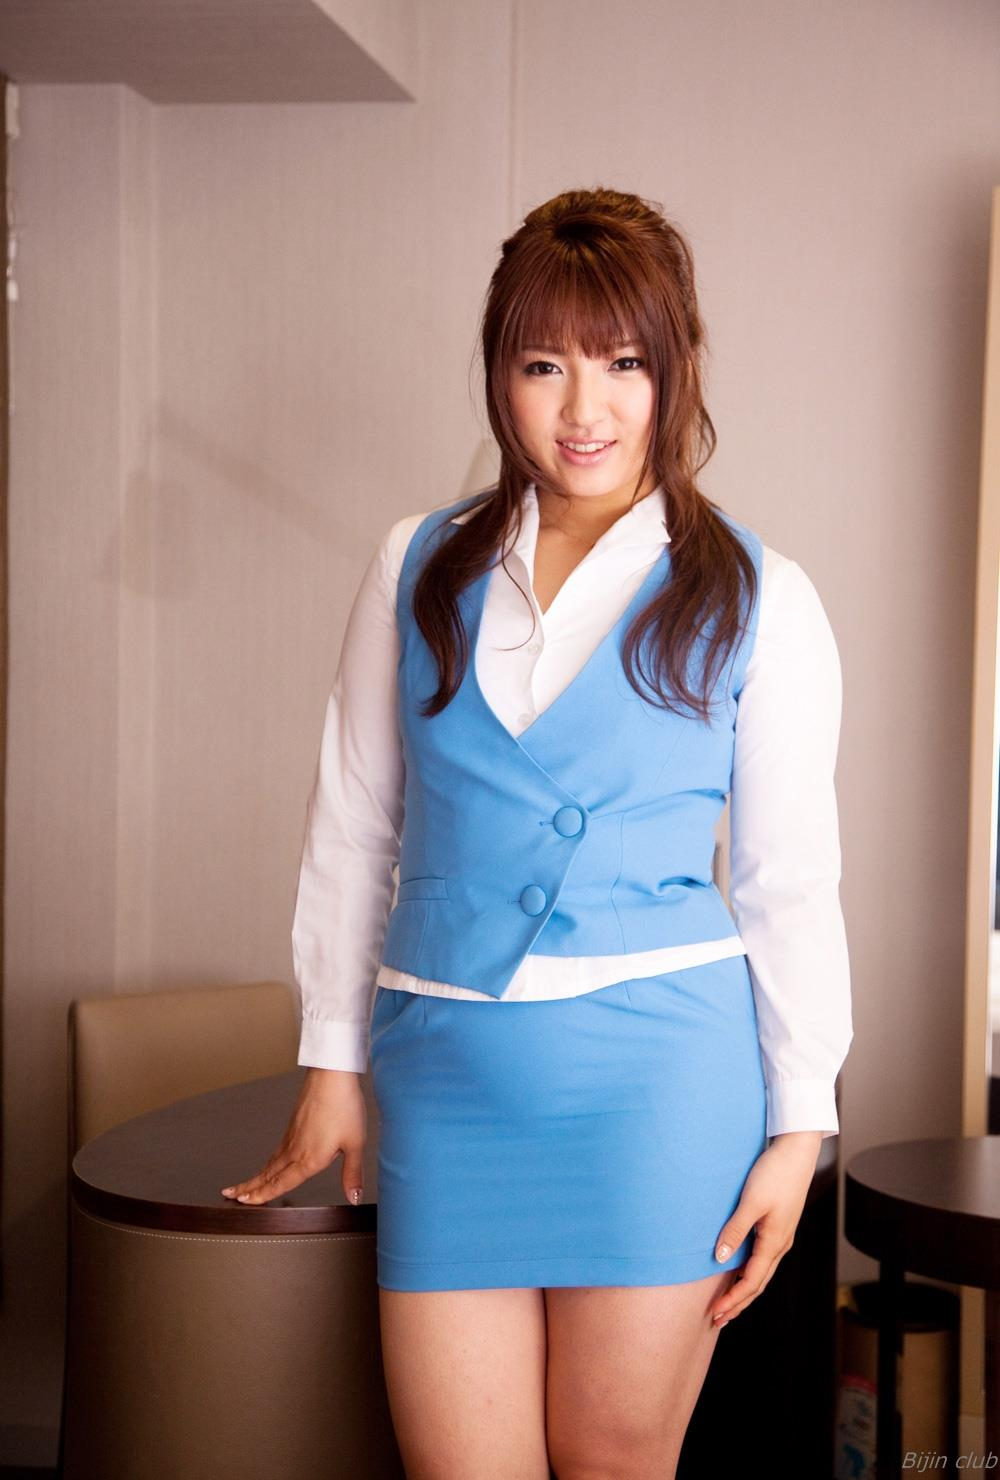 richland center asian girl personals Meet wisconsin singles our bold, scientific approach to matching means more quality dates with deeply compatible singles in wisconsin who truly understand you find a meaningful, lasting relationship in the badger state with eharmony.